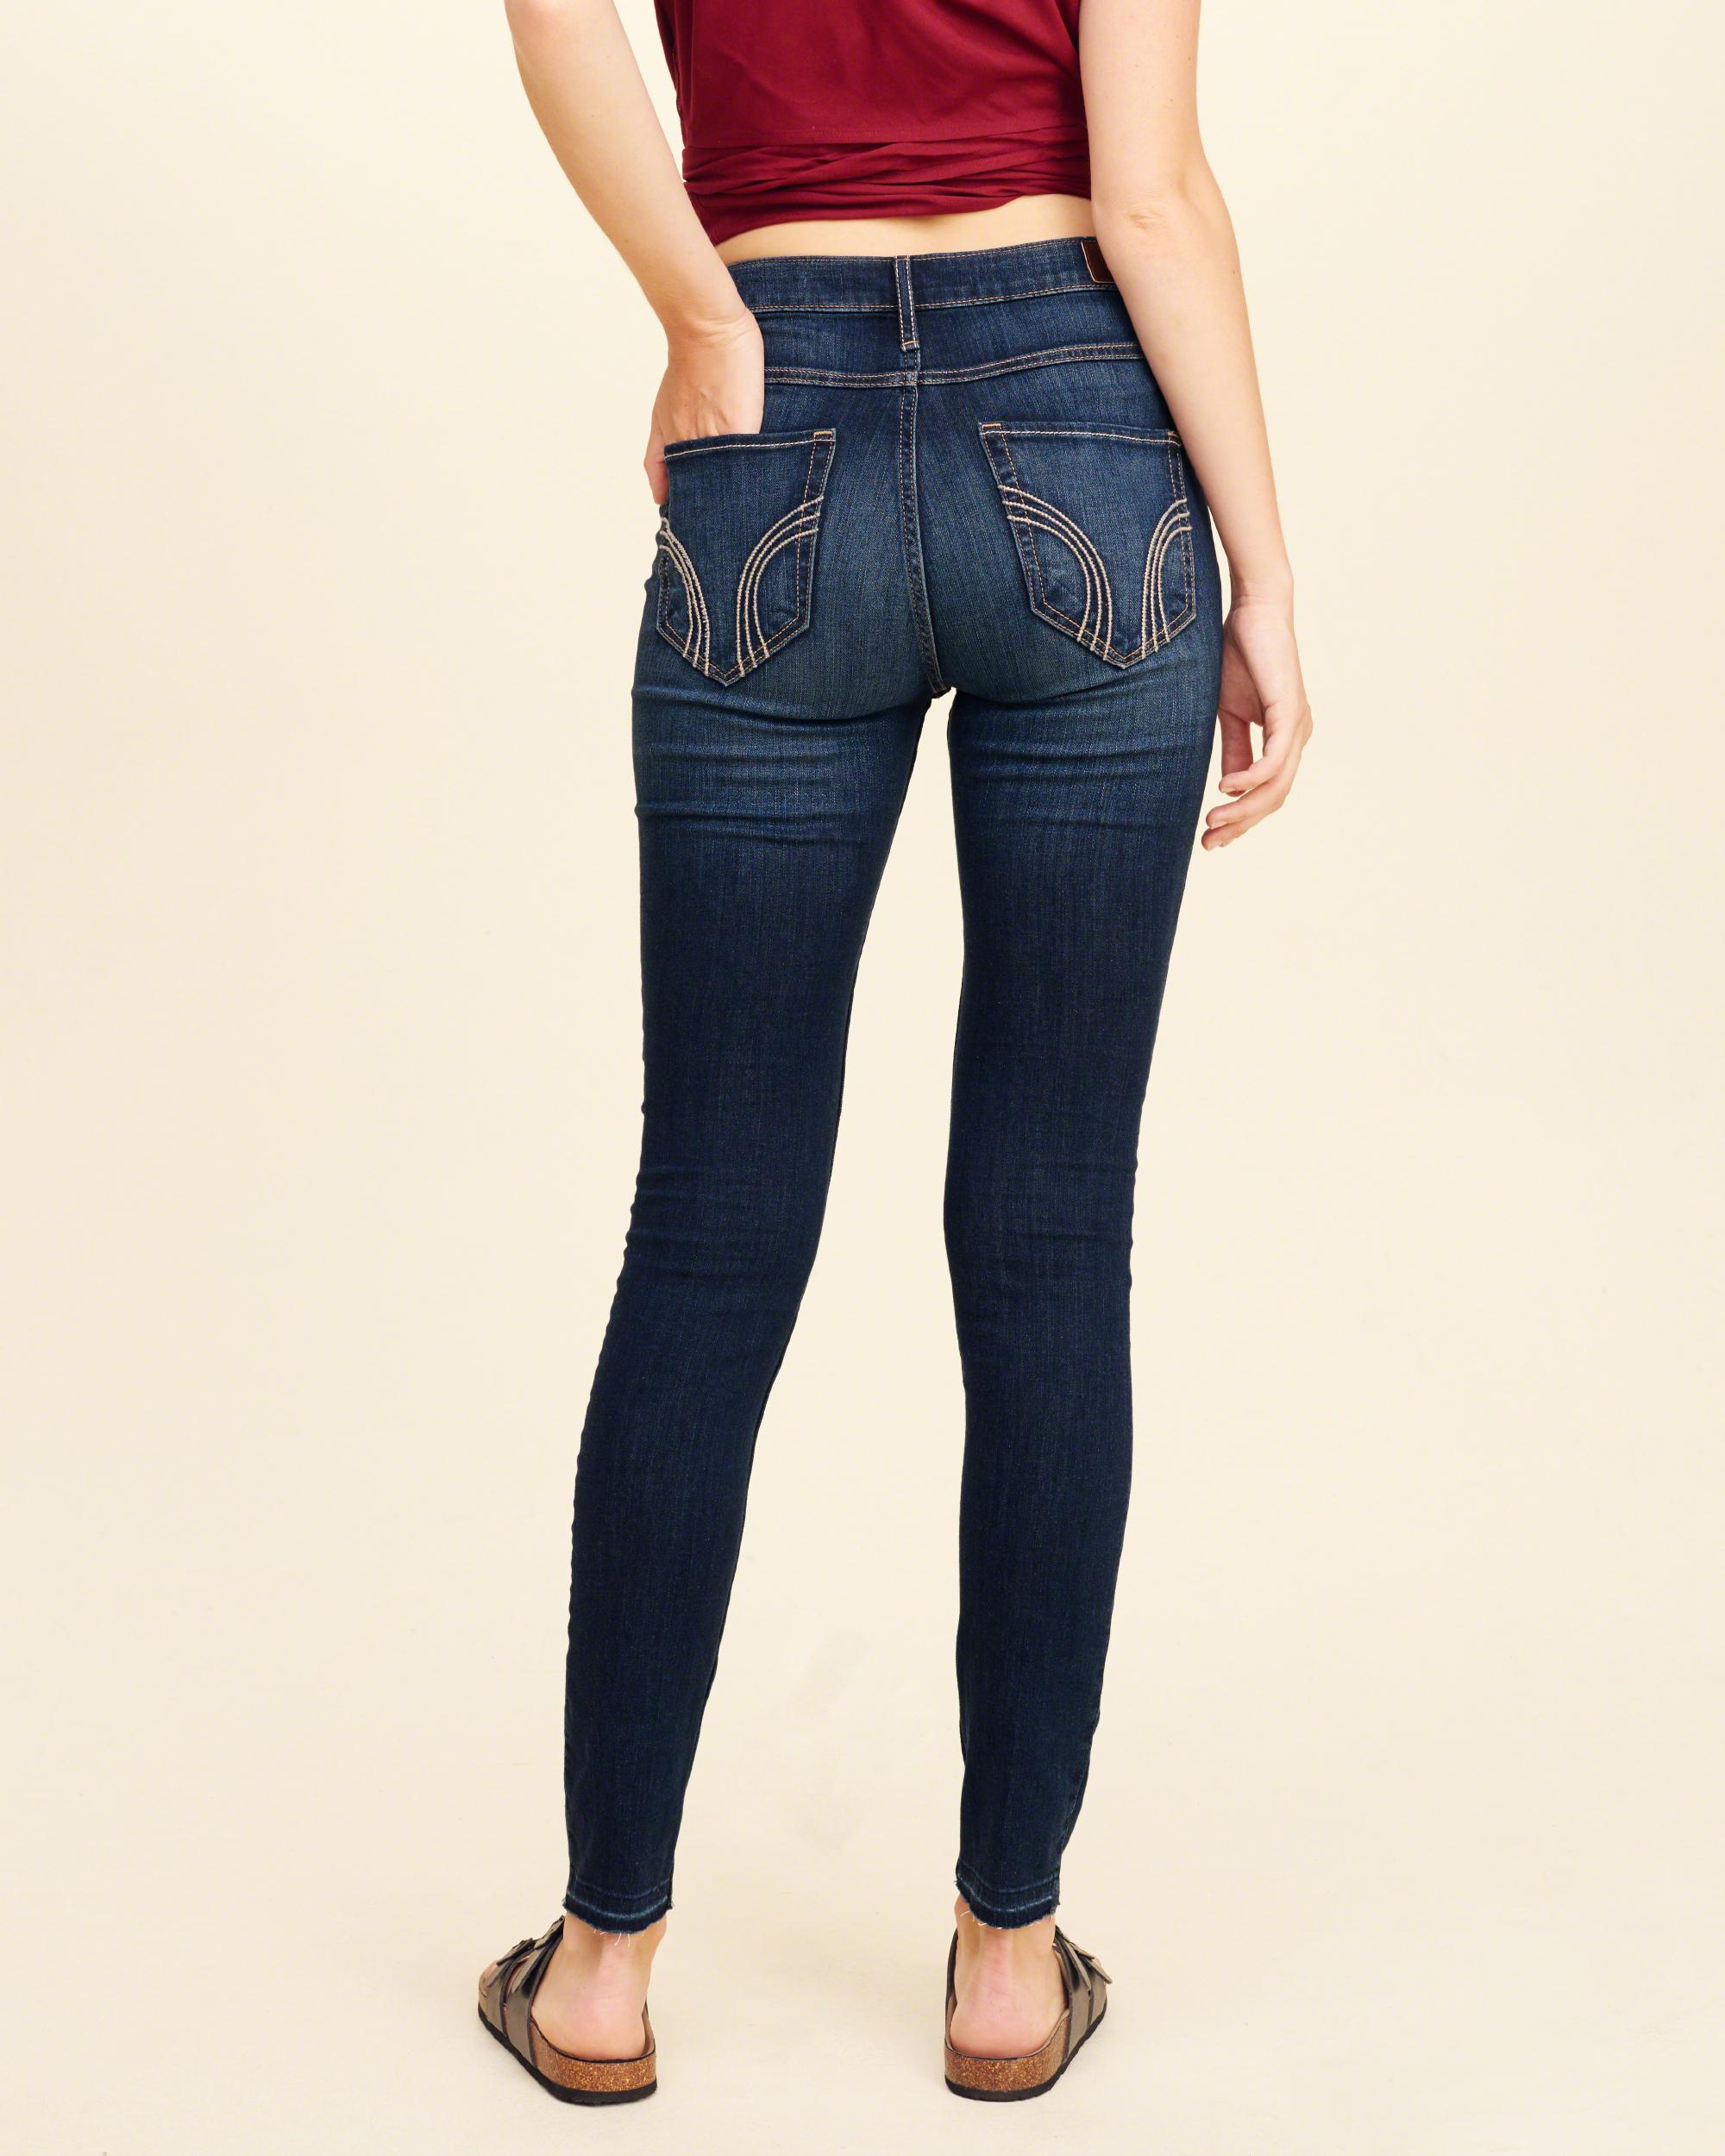 Lyst - Hollister High-rise Super Skinny Jeans in Blue